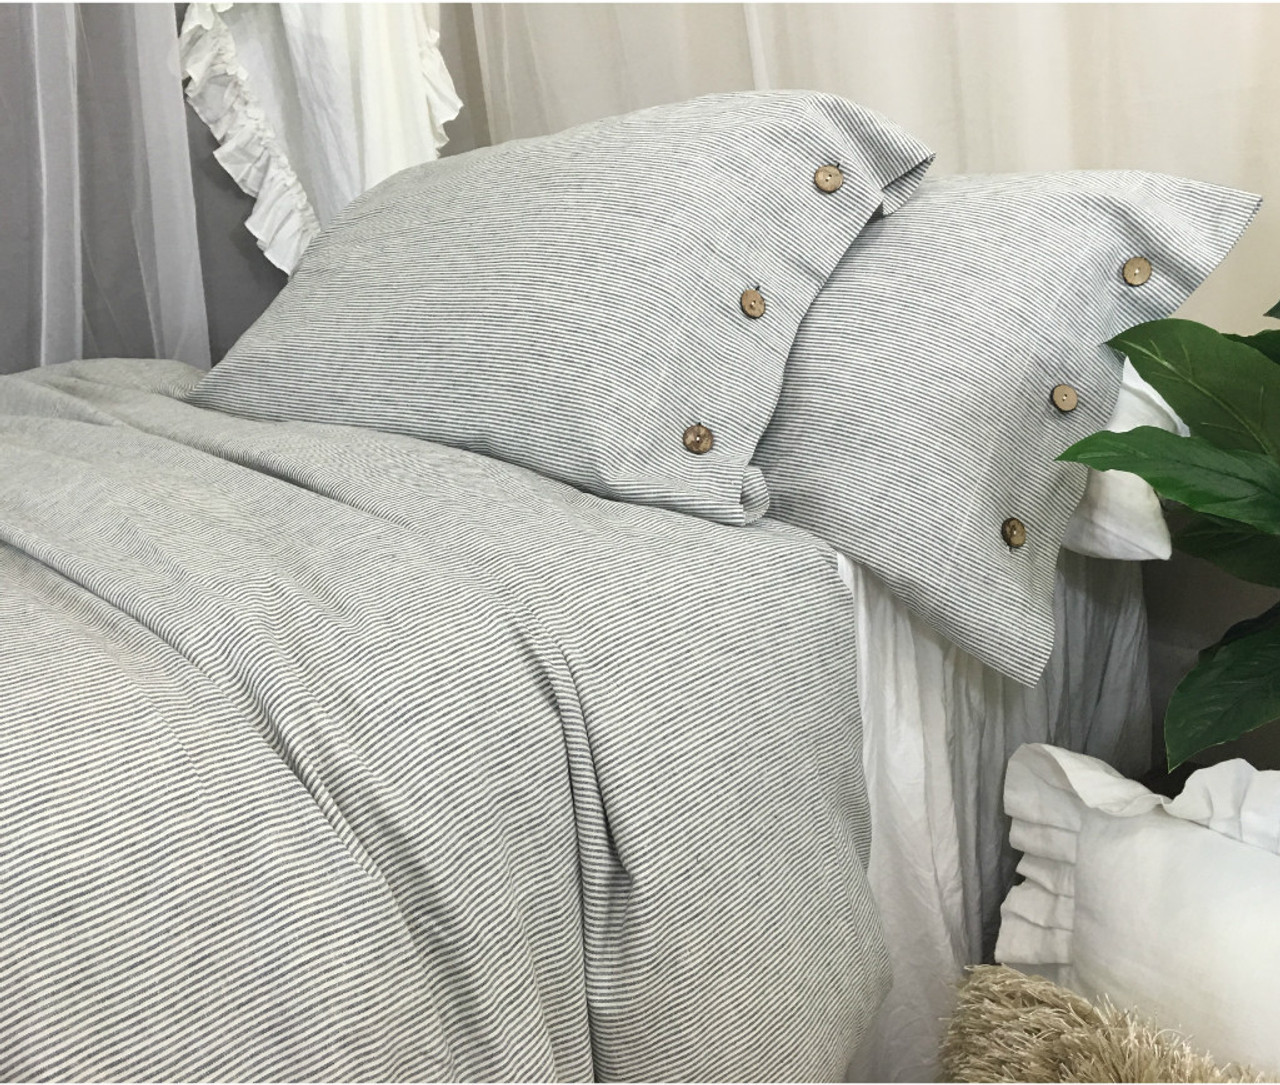 Awesome Subtle Black And White Ticking Striped Duvet Cover With Wooden Button  Closure